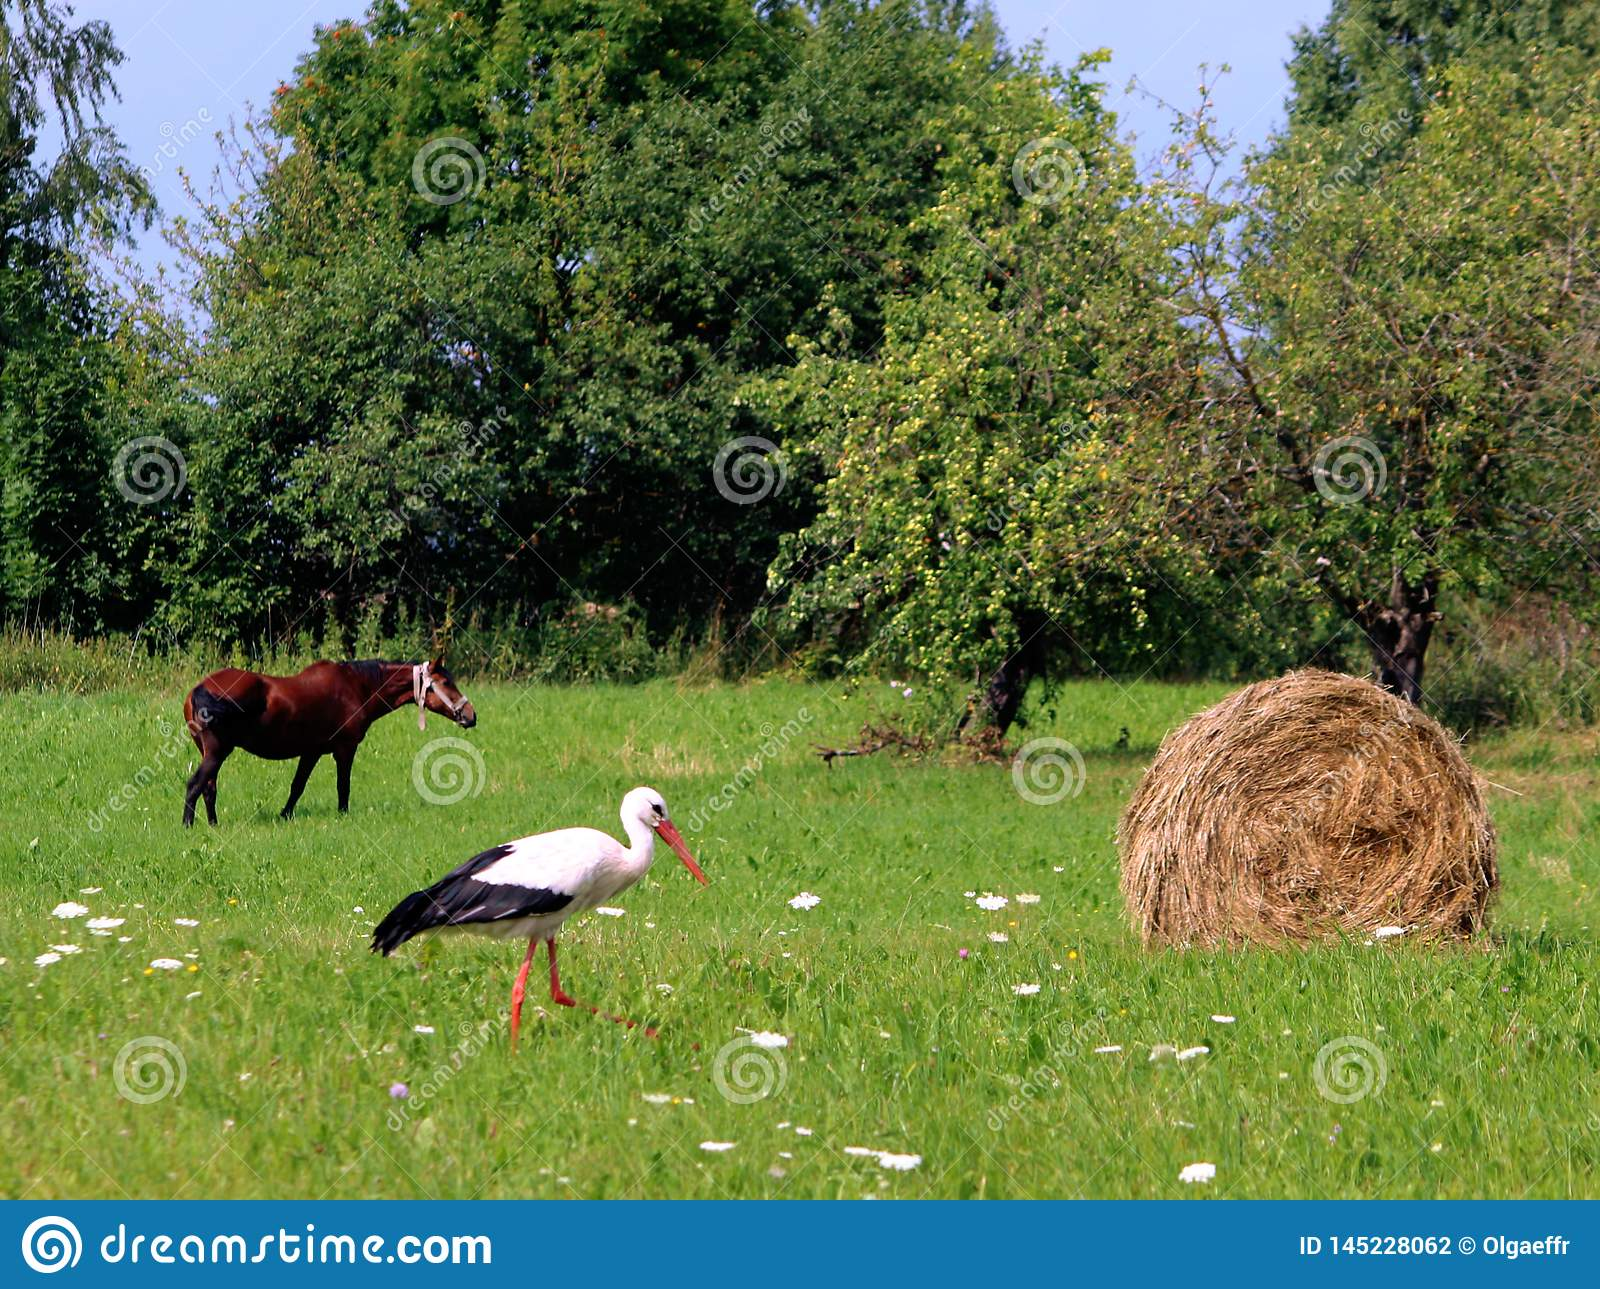 A storks and a haystack. Village. Daylight. Summer photography.